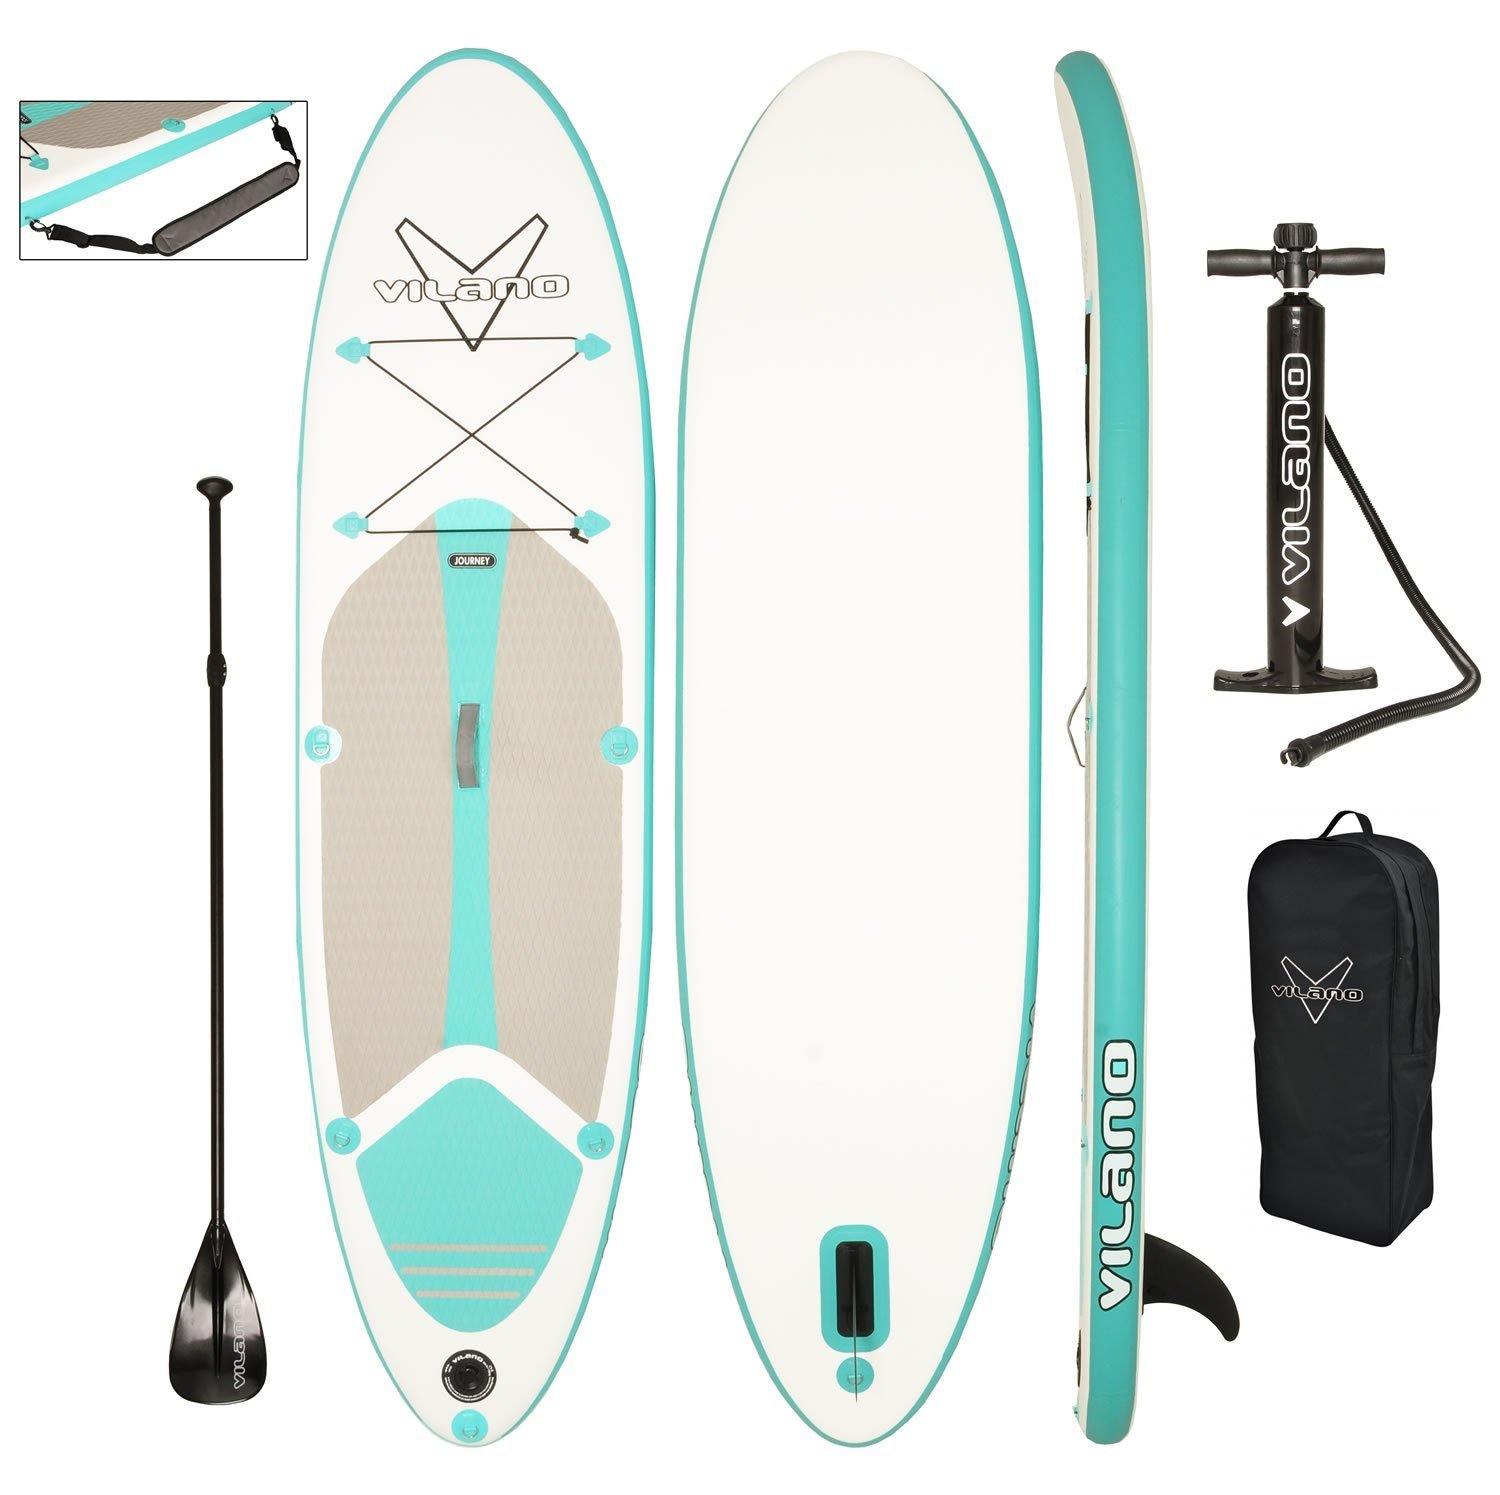 Vilano Sport Inflatable Paddleboard Review